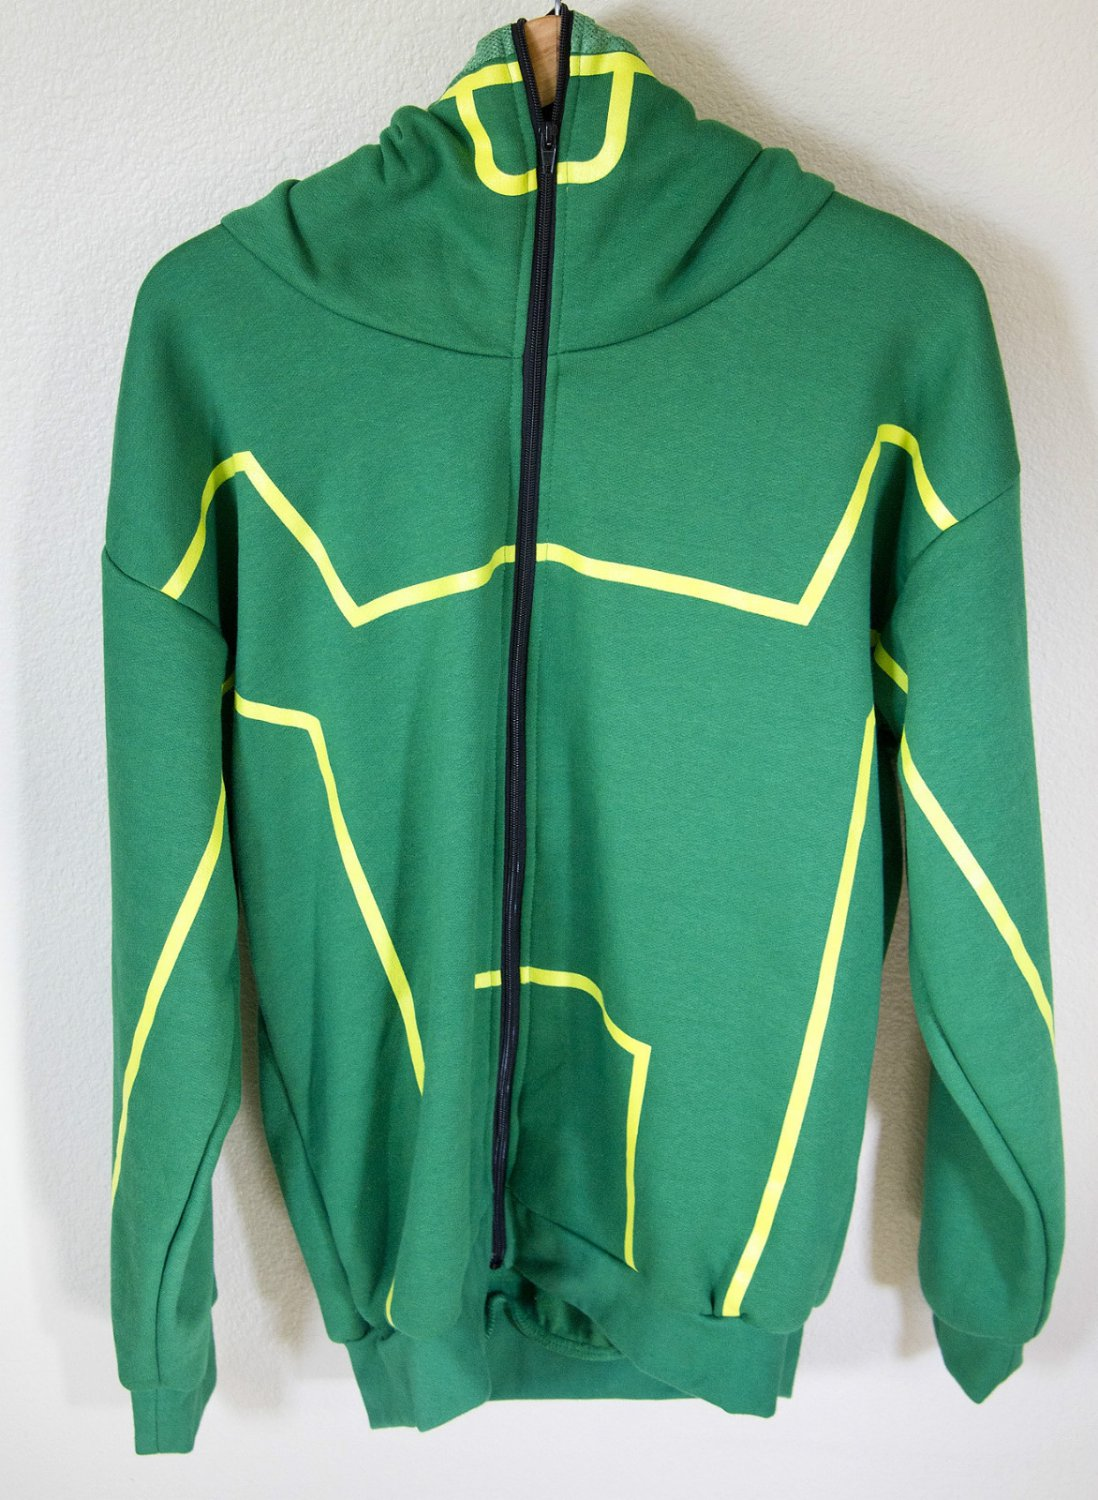 Kick-Ass 2 Hoodie Sweat Jacket Exclusive SDCC 2013 - Size Large